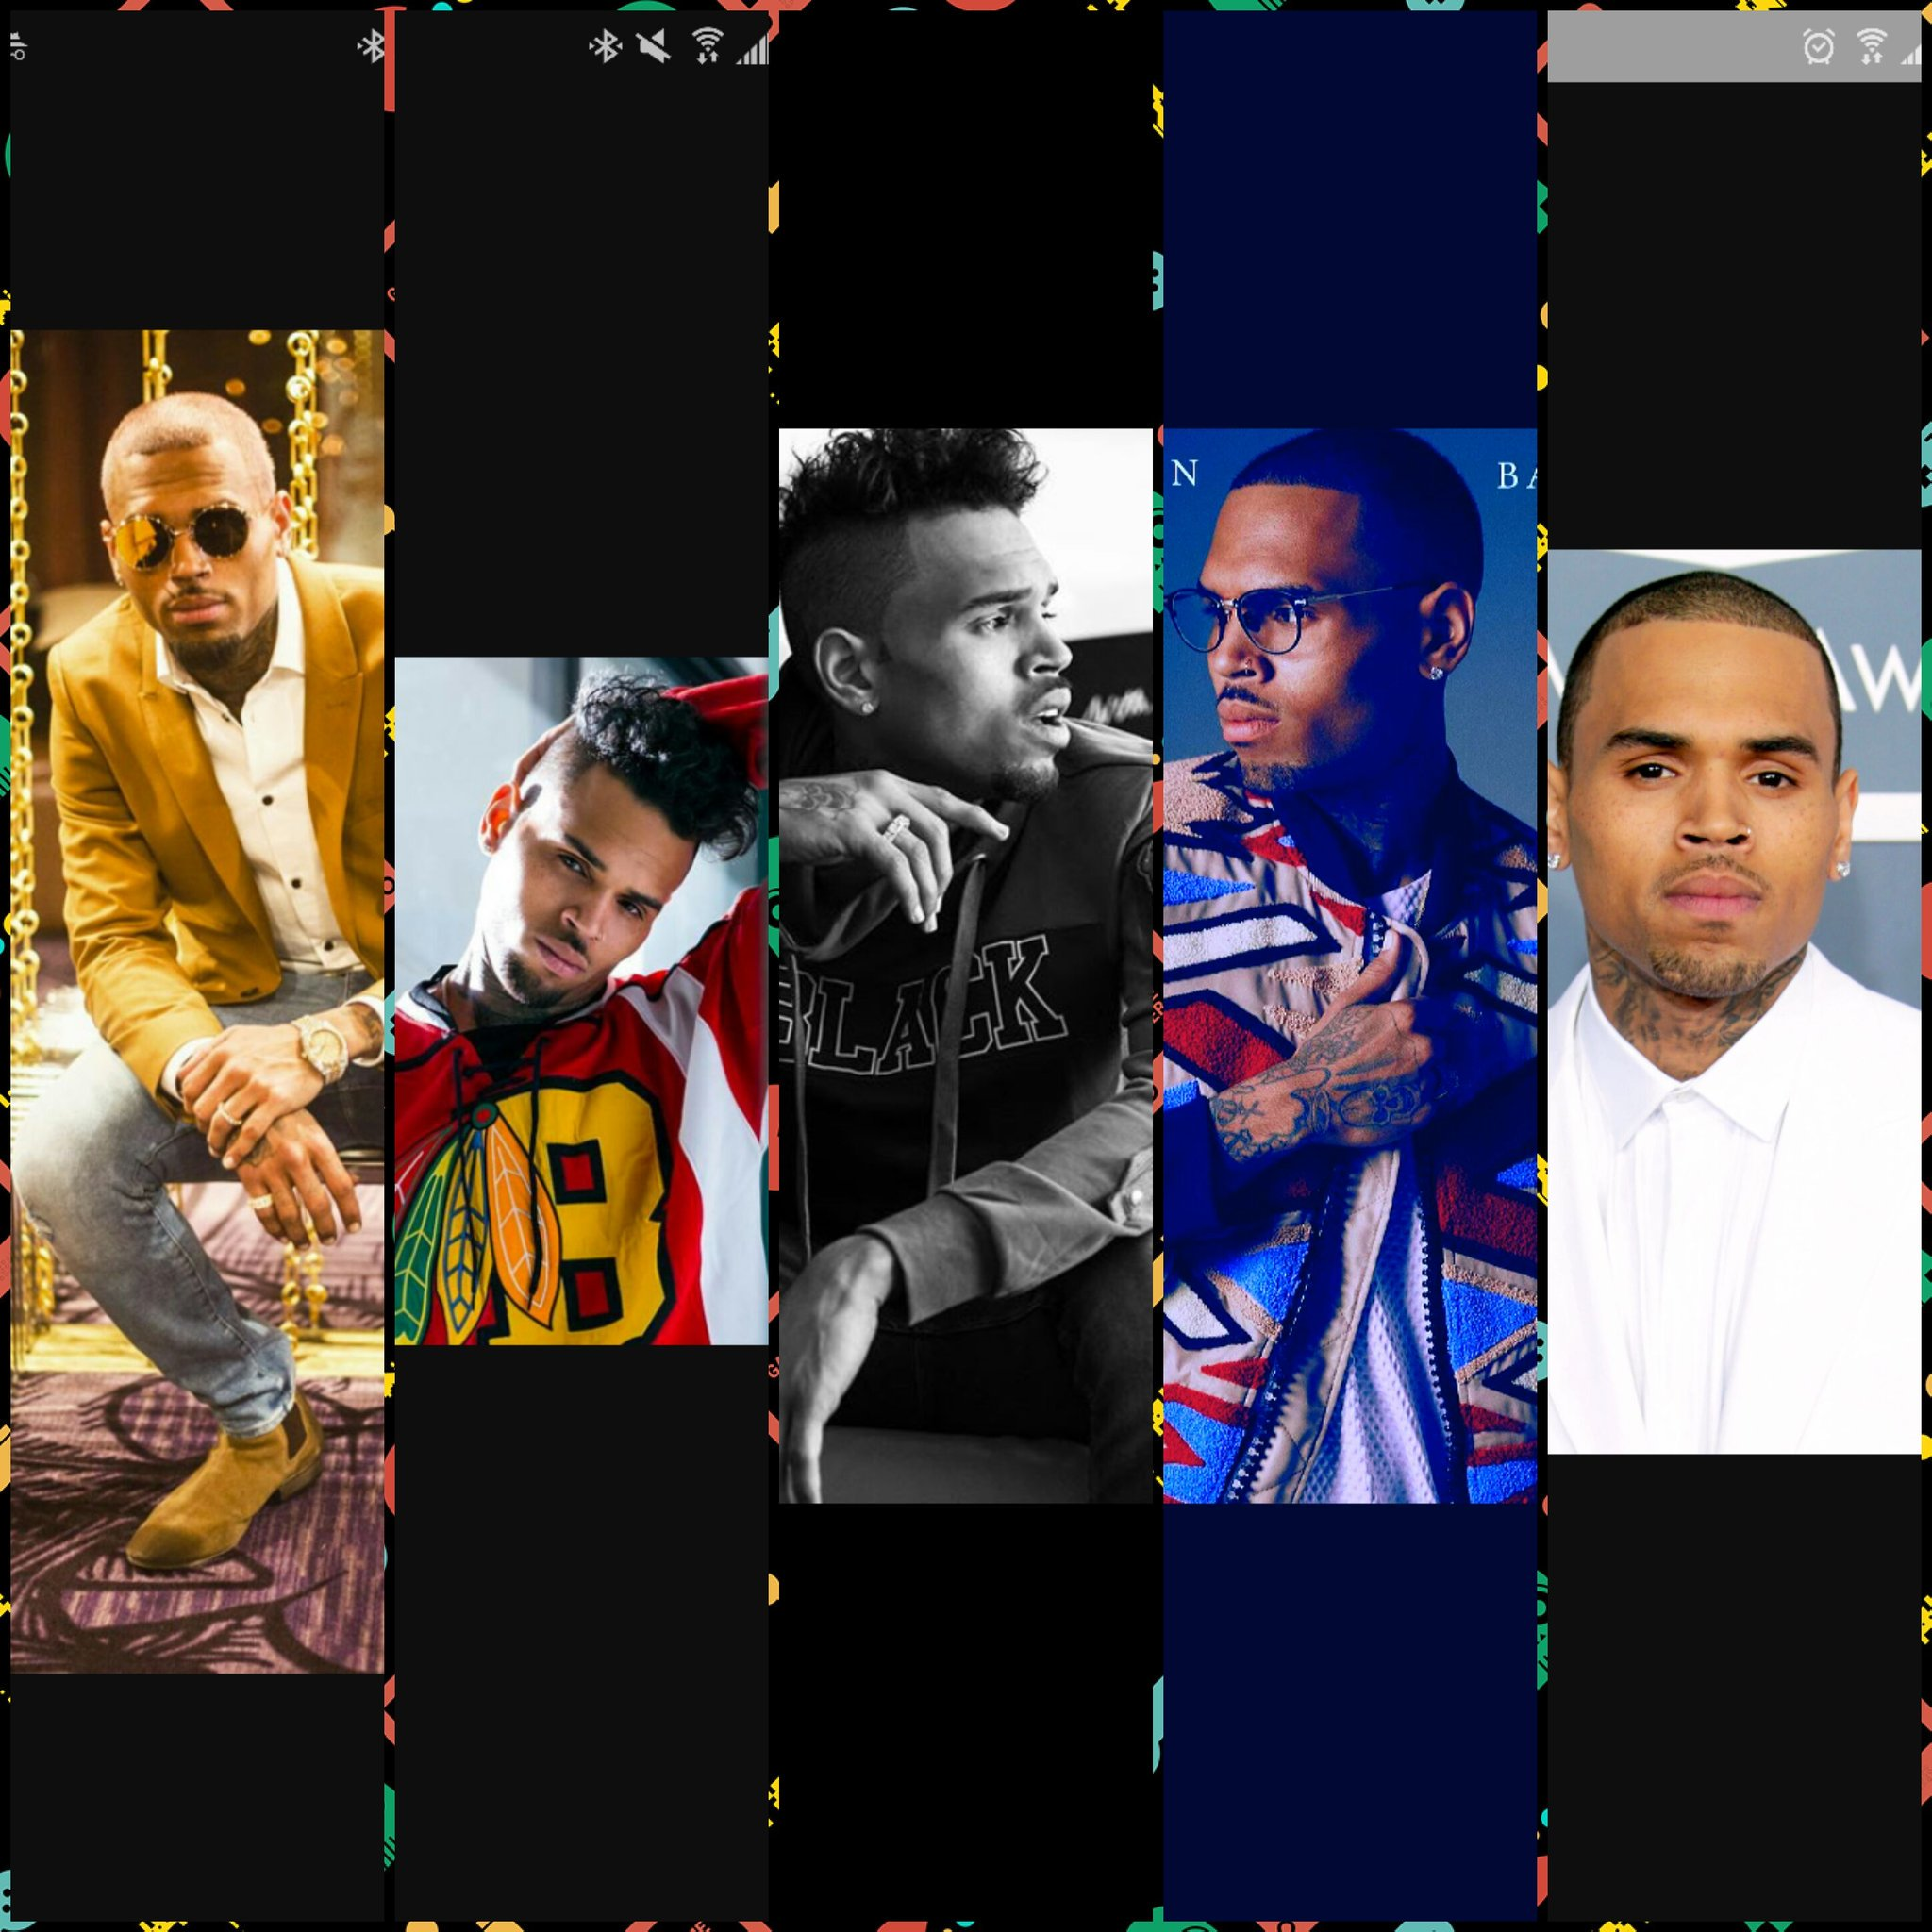 Happy birthday to the best artist out there, my idol, Chris Brown